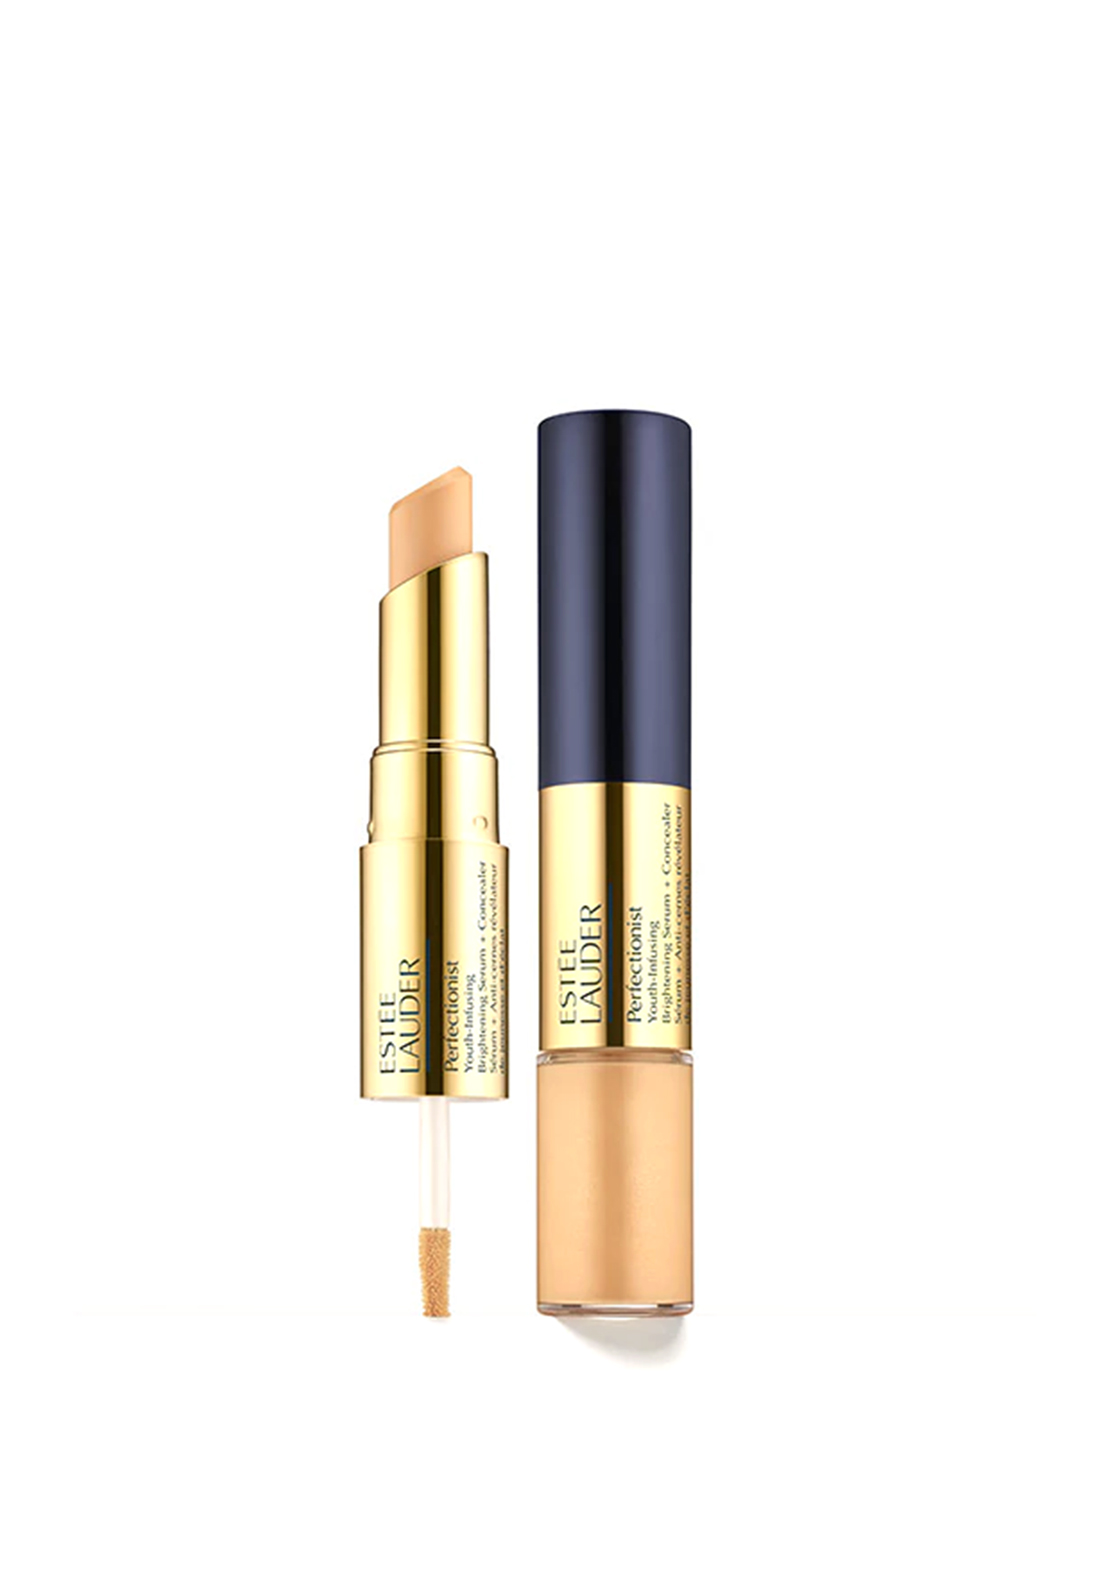 Estee Lauder Perfectionist Youth-Infusing Brightening Serum & Concealer, Light Warm